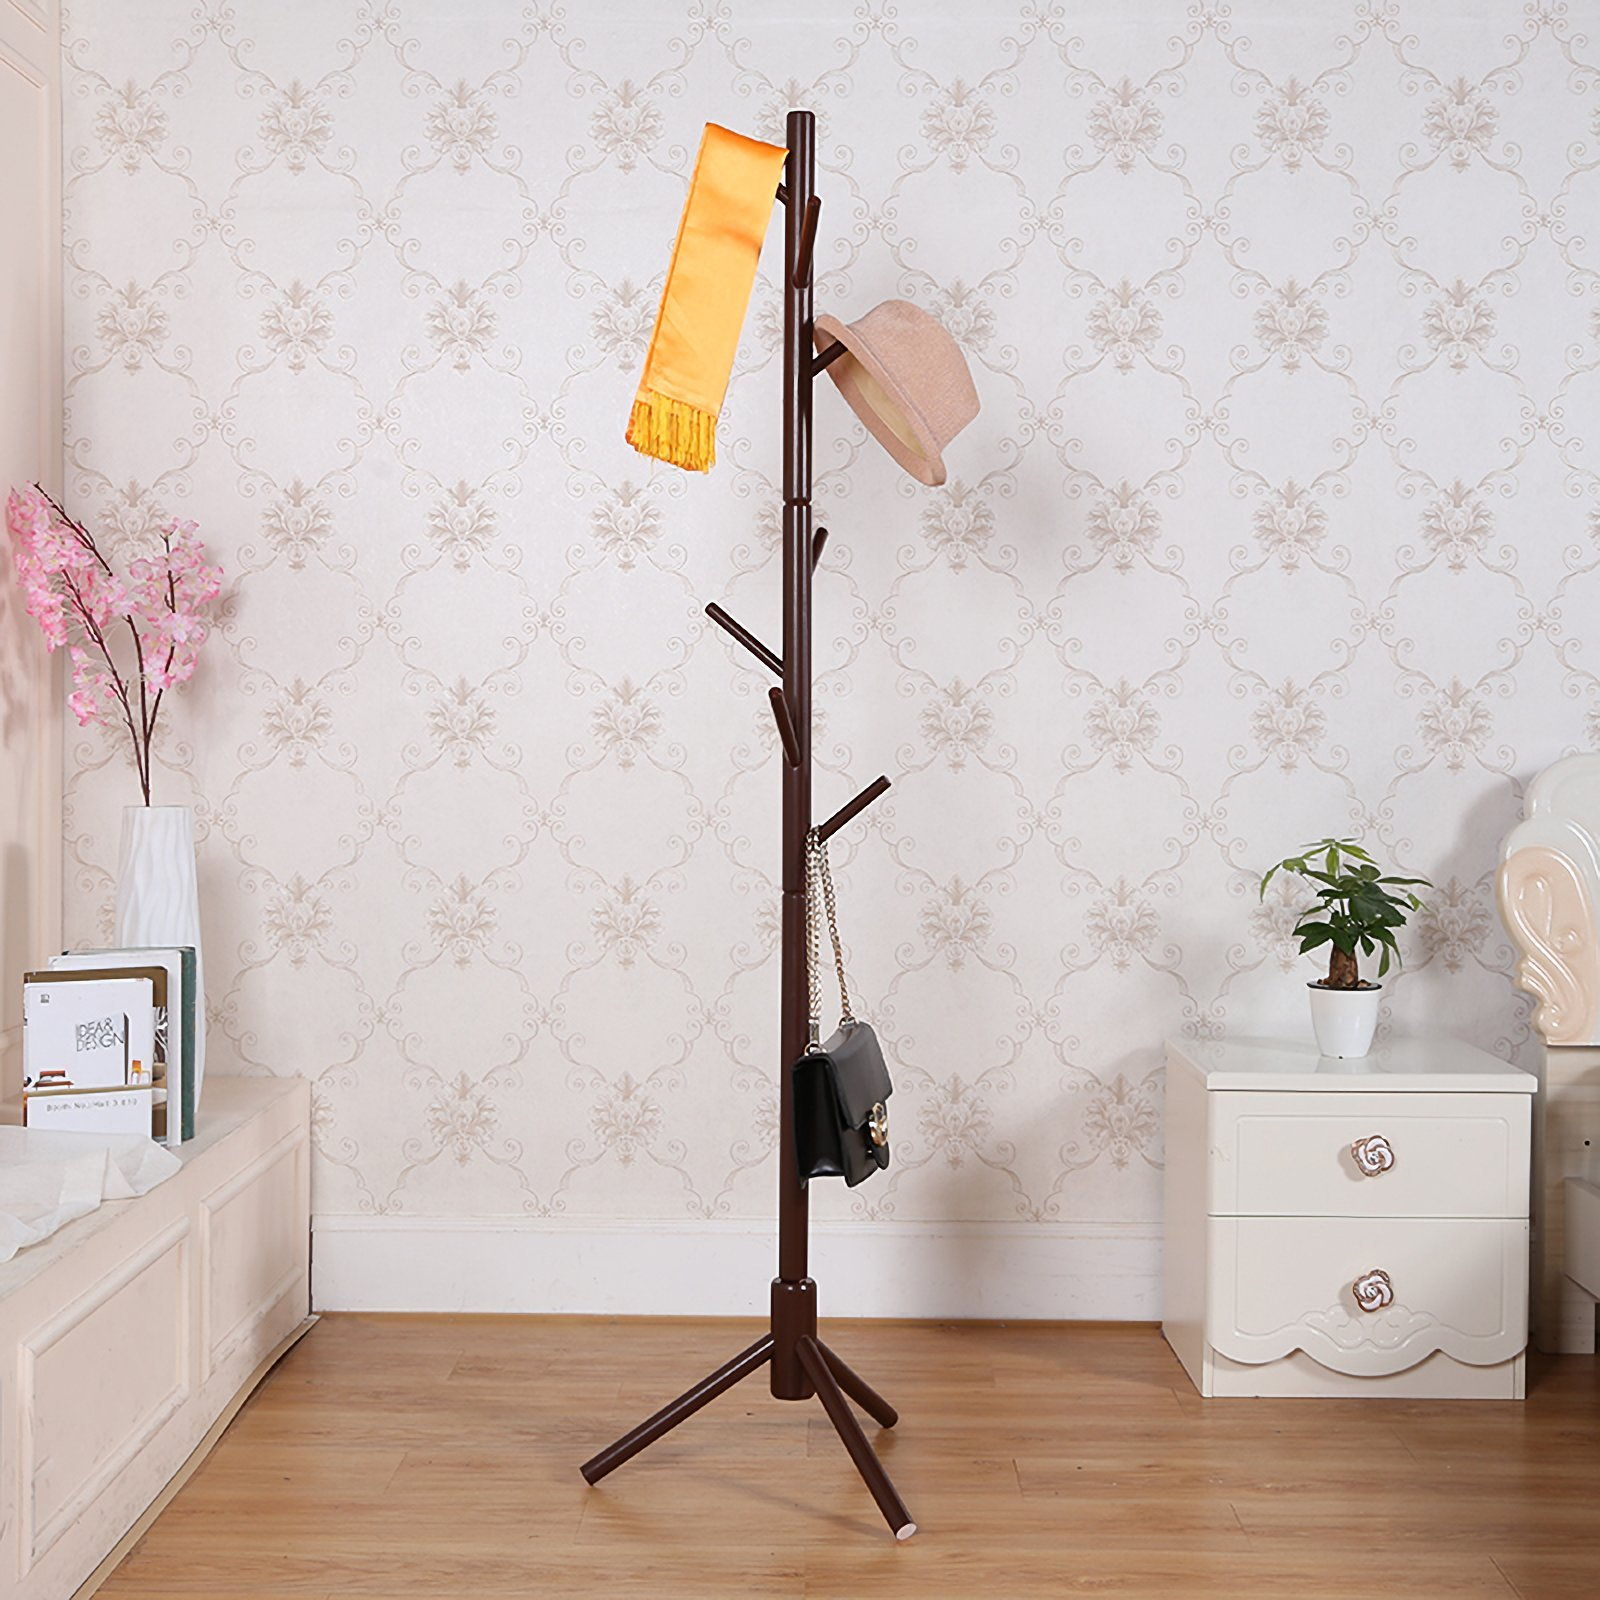 JOYBASE 8 hooks Wooden Coat Rack/Clothes Hanger Stand, for Coats, Hats, Scarves, Jacket and Handbags(Coffee) by JOYBASE (Image #6)